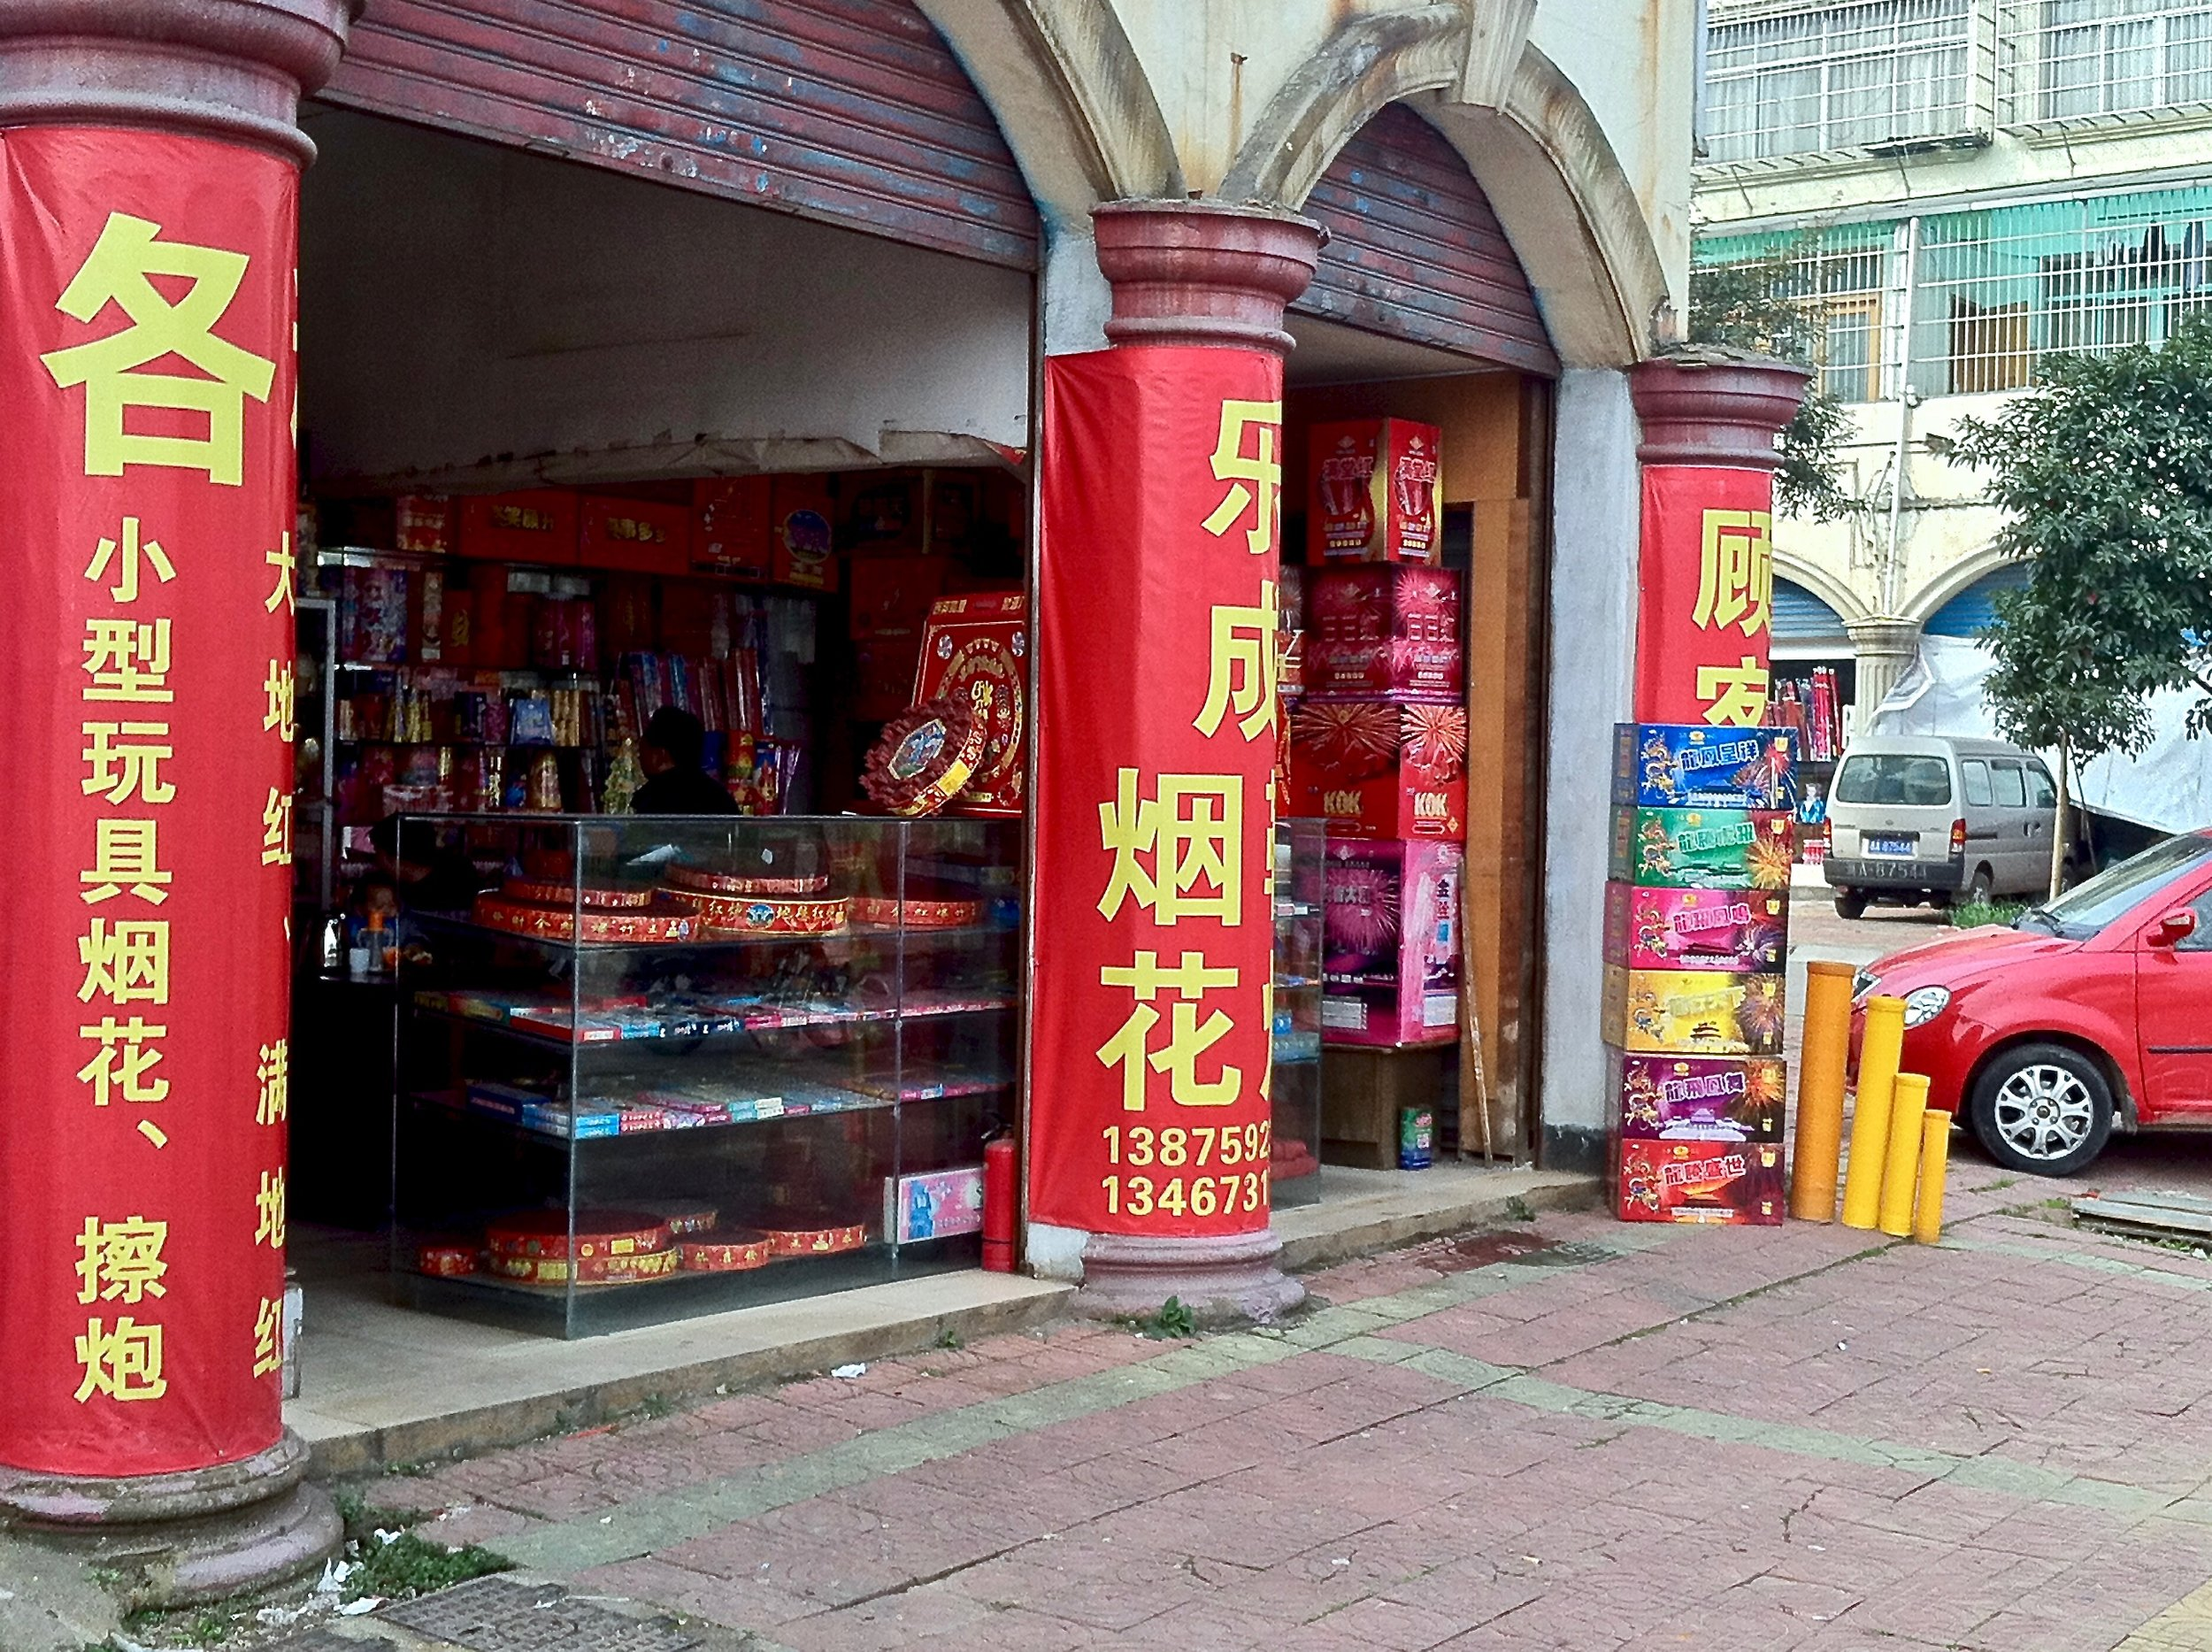 Fireworks store in Liuyang, China. Photo: (C) Remko Tanis